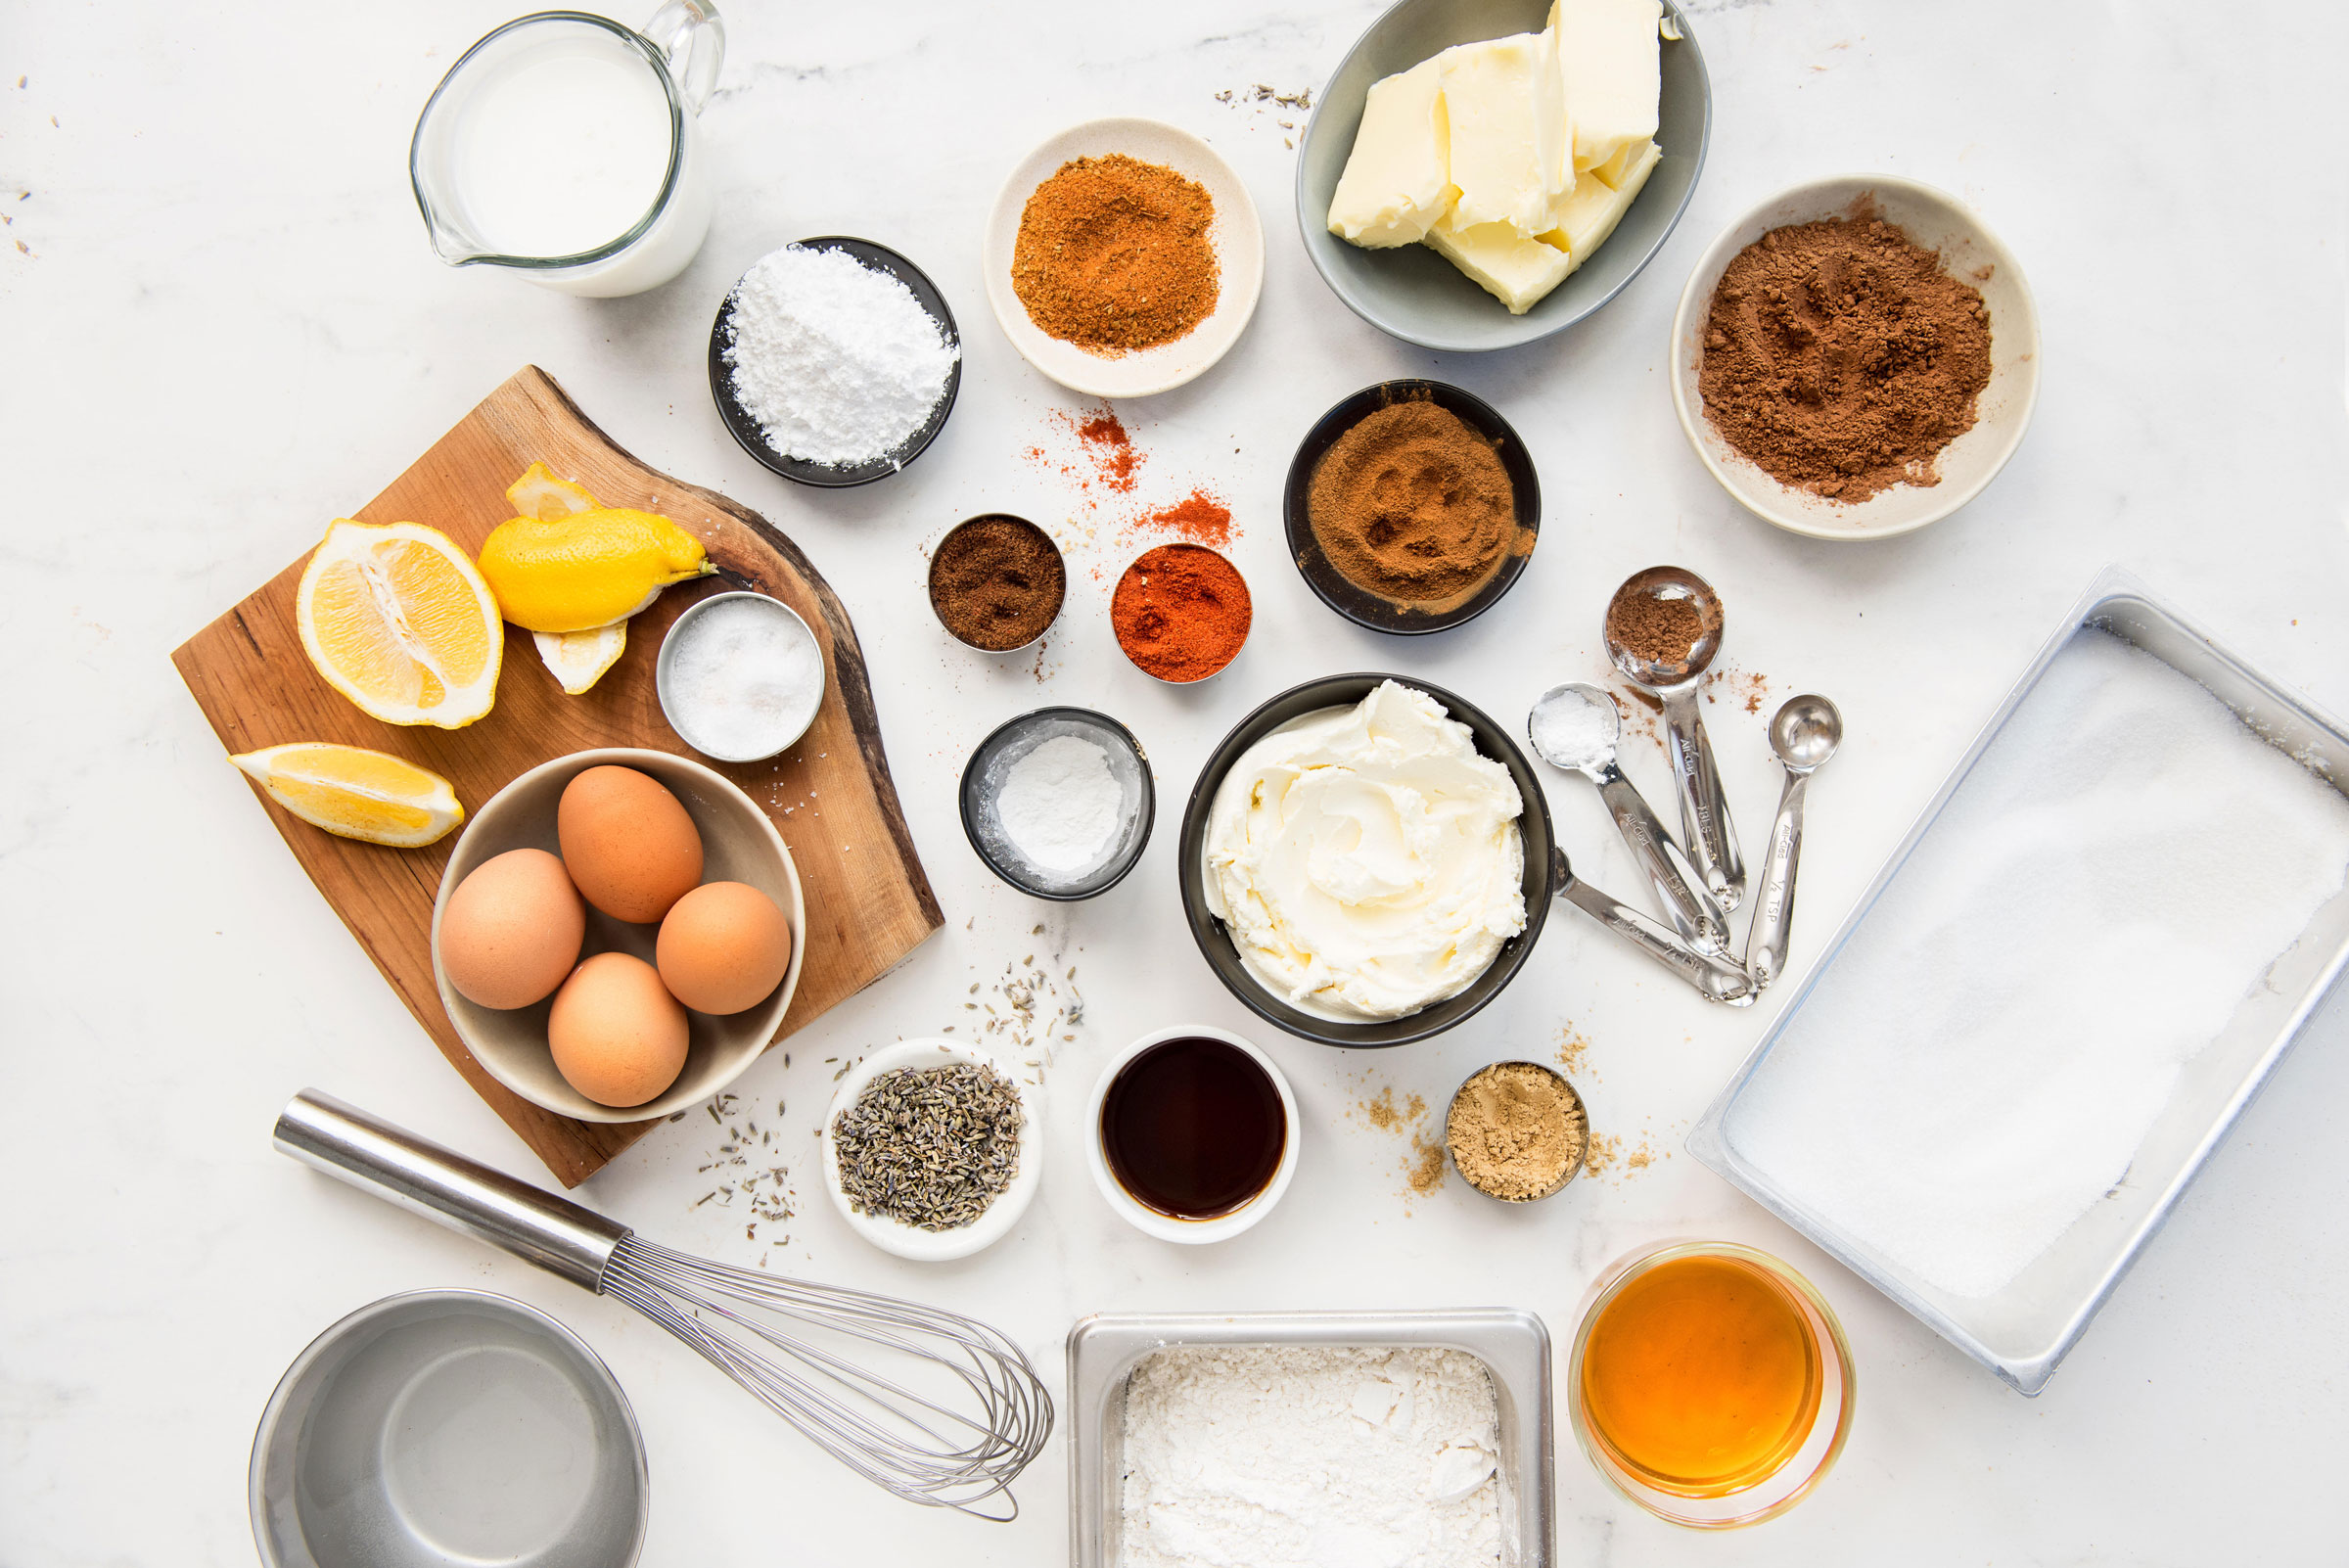 Conestoga Farms Eggs lay on a table with baking ingredients